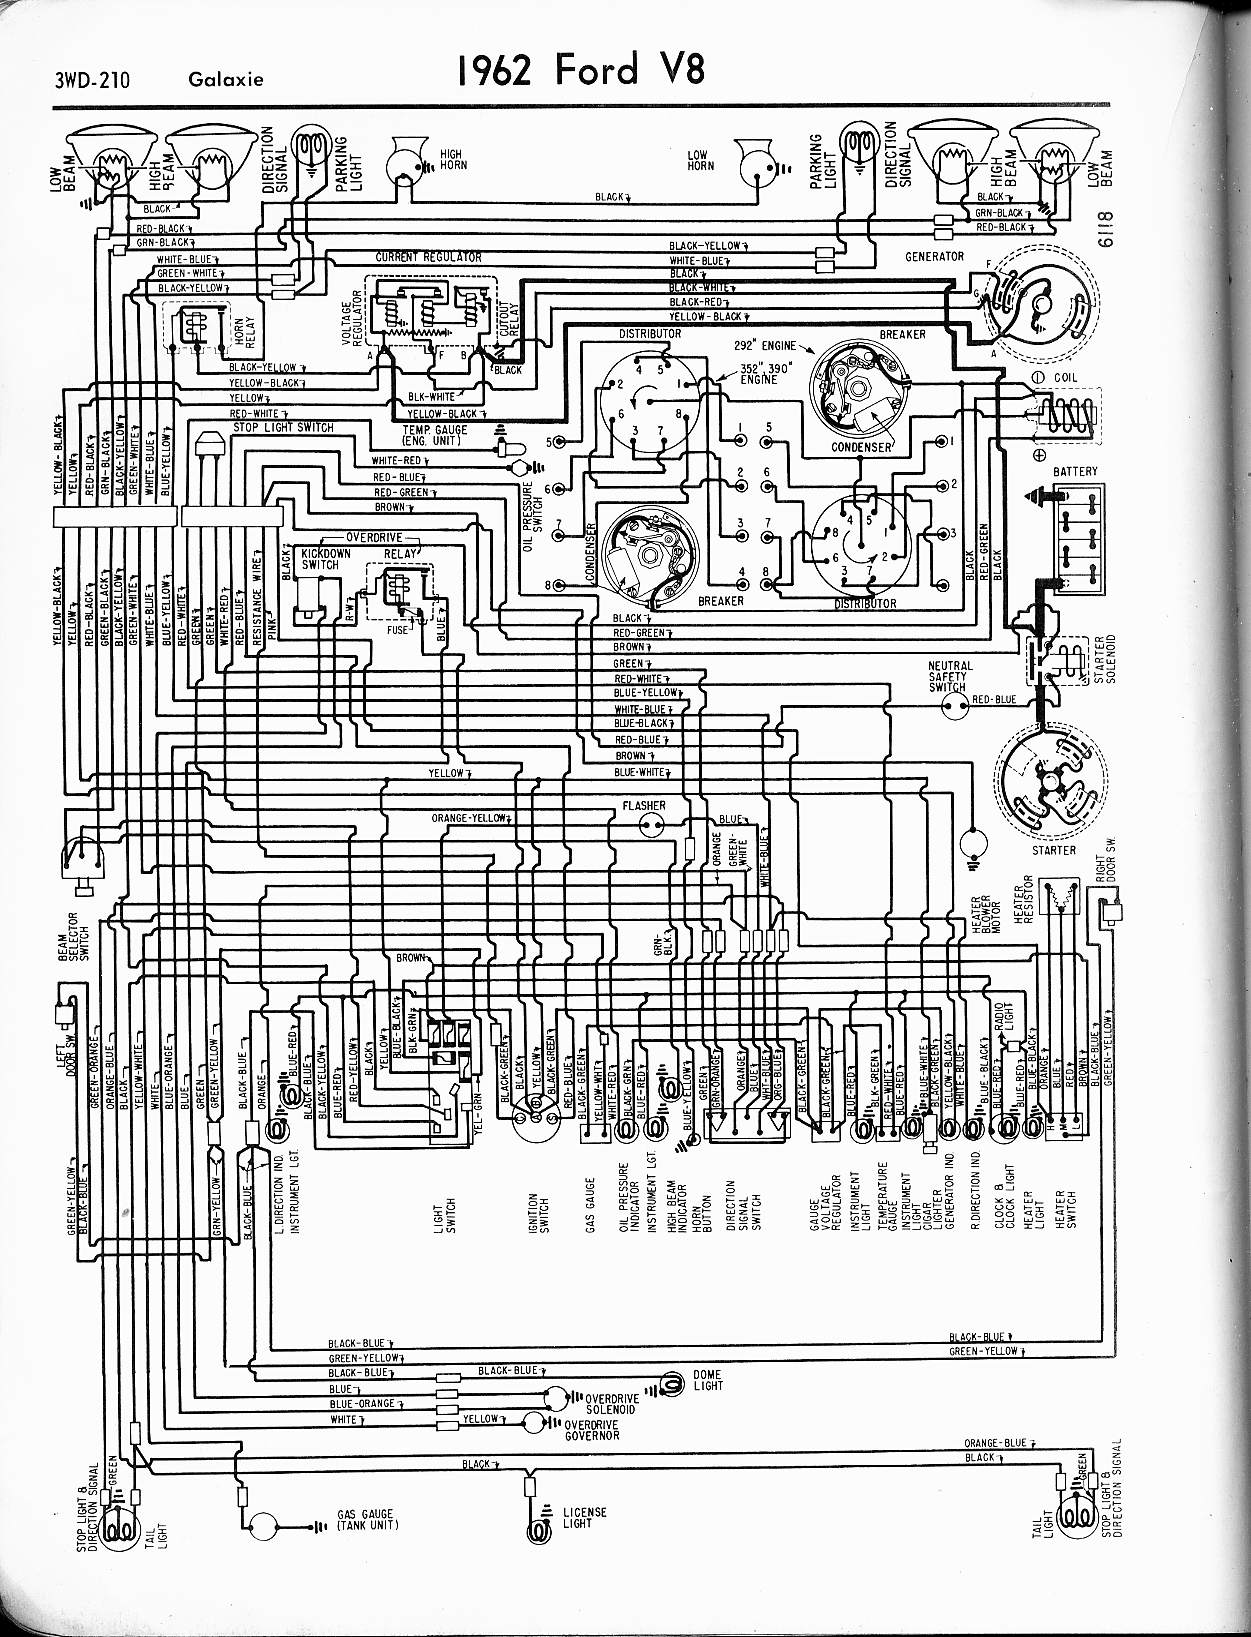 MWire5765 210 57 65 ford wiring diagrams 1961 ford truck wiring diagram at gsmportal.co